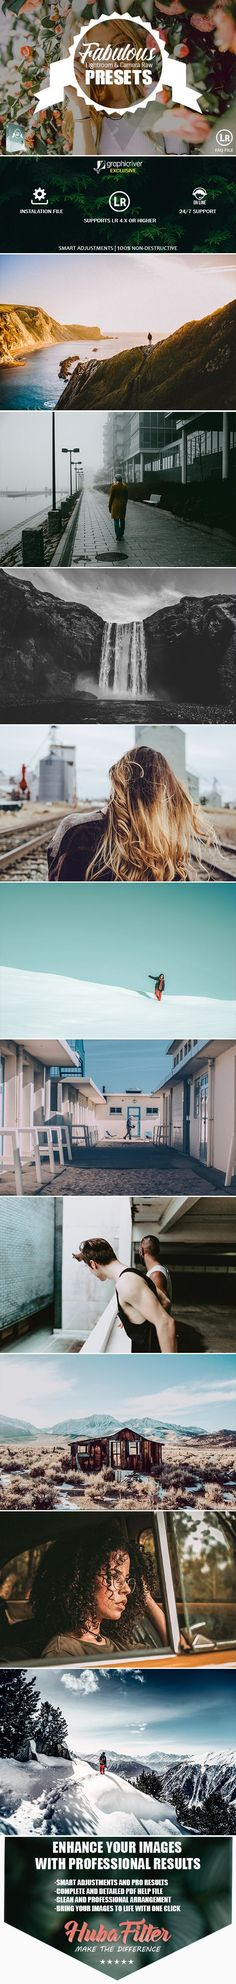 35 Fabulous Collection Presets For Lightroom & Camera Raw - #Lightroom #Presets #Add-ons Download here: https://graphicriver.net/item/35-fabulous-collection-presets-for-lightroom-camera-raw/19740439?ref=alena994